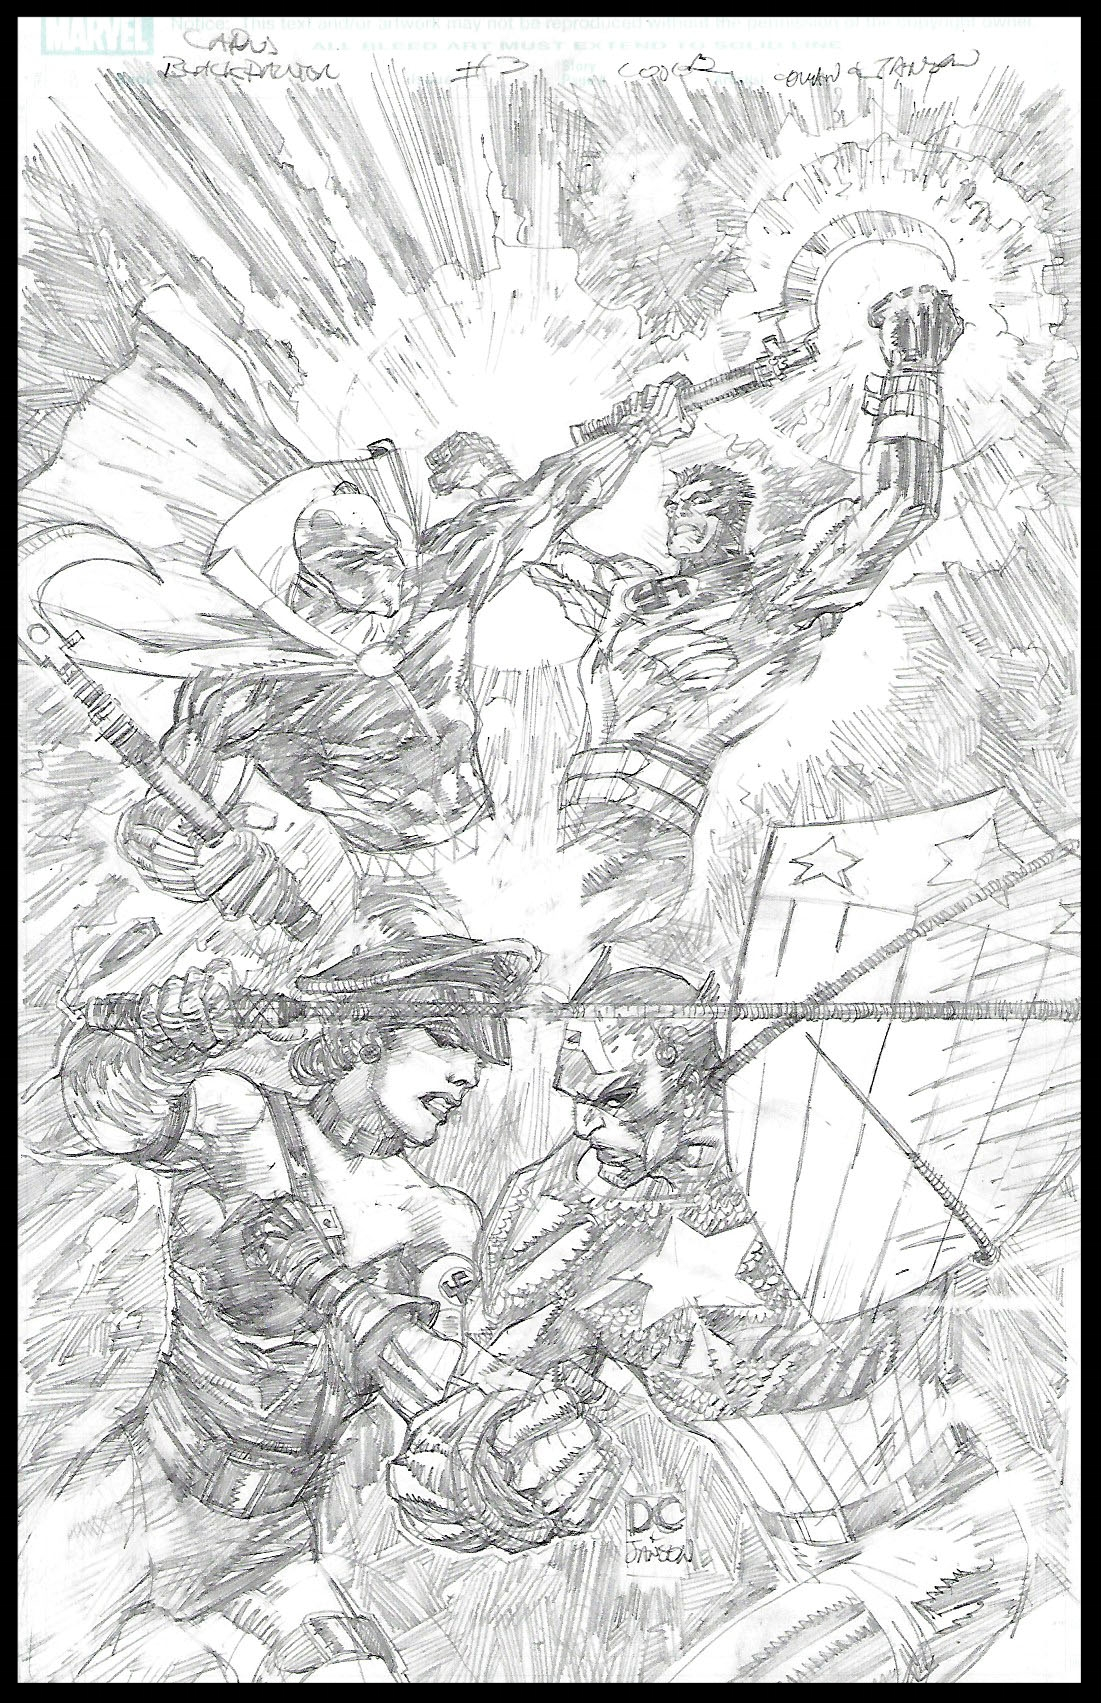 Flags of Our Fathers #3 - Cover - Pencils